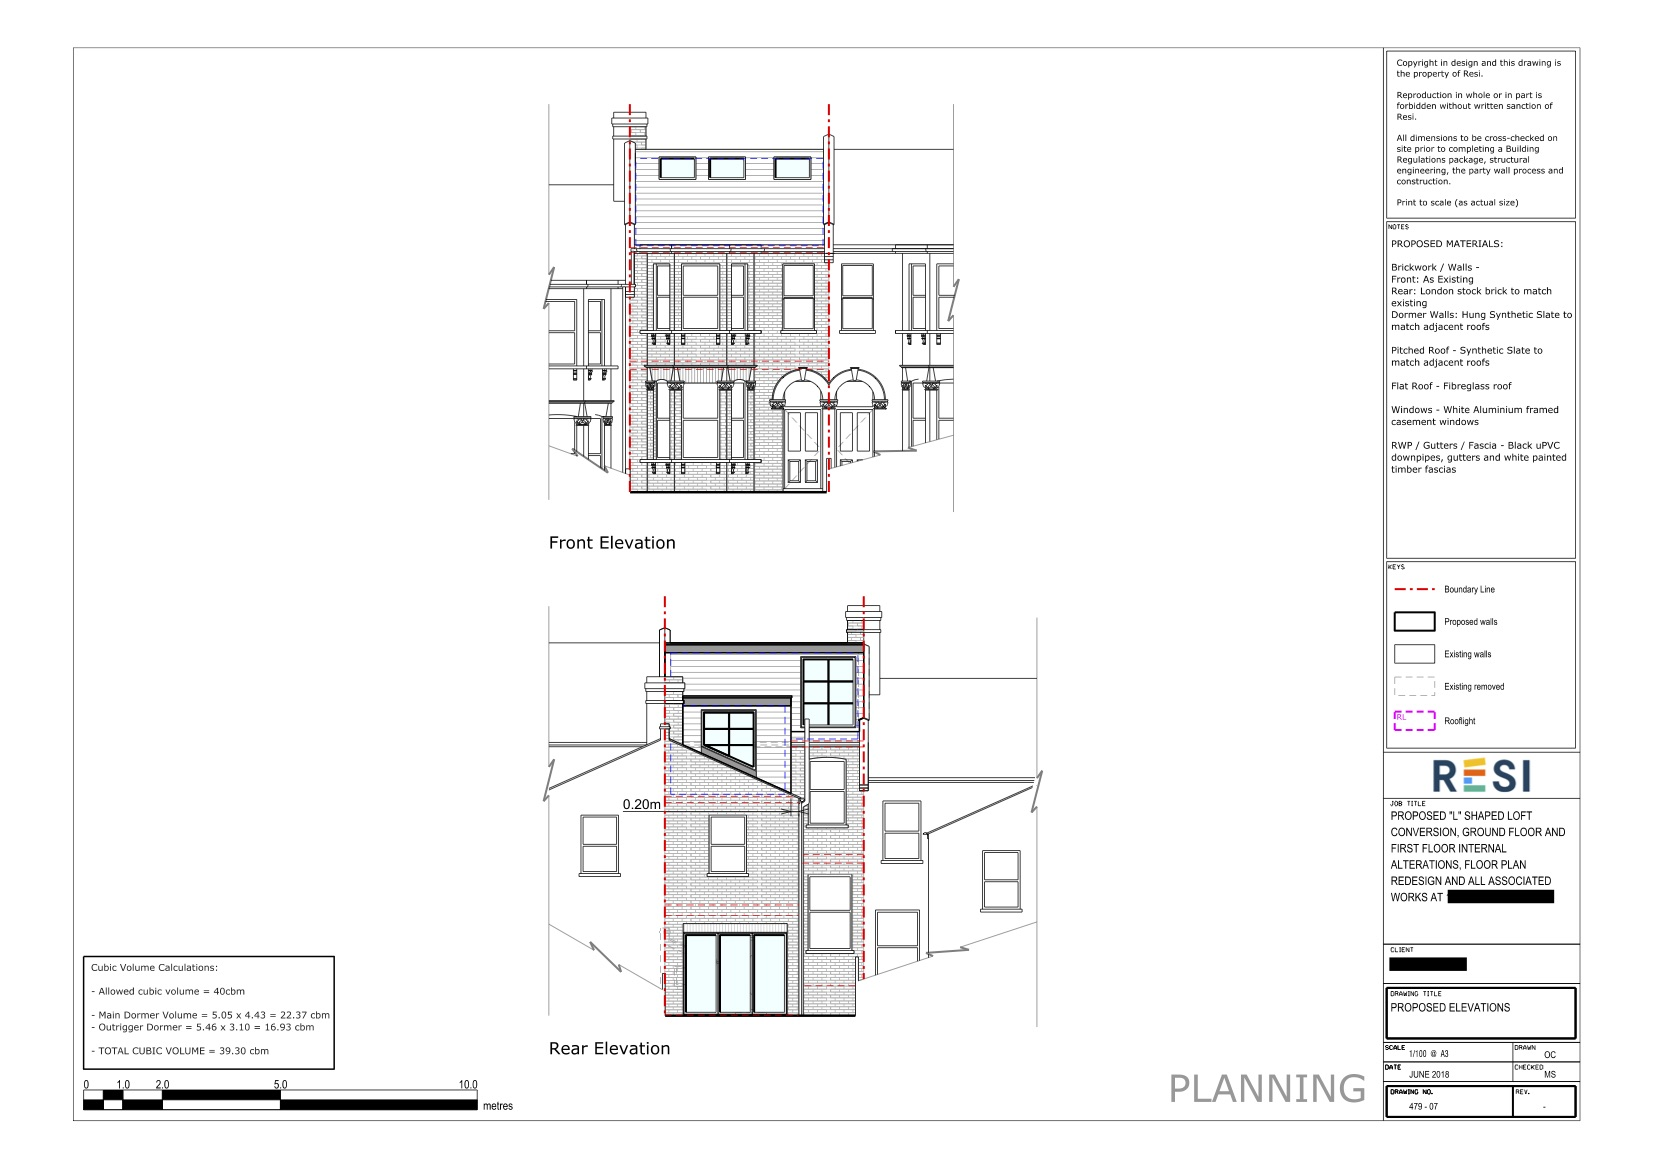 Architectural drawings 32    rear and front elevations